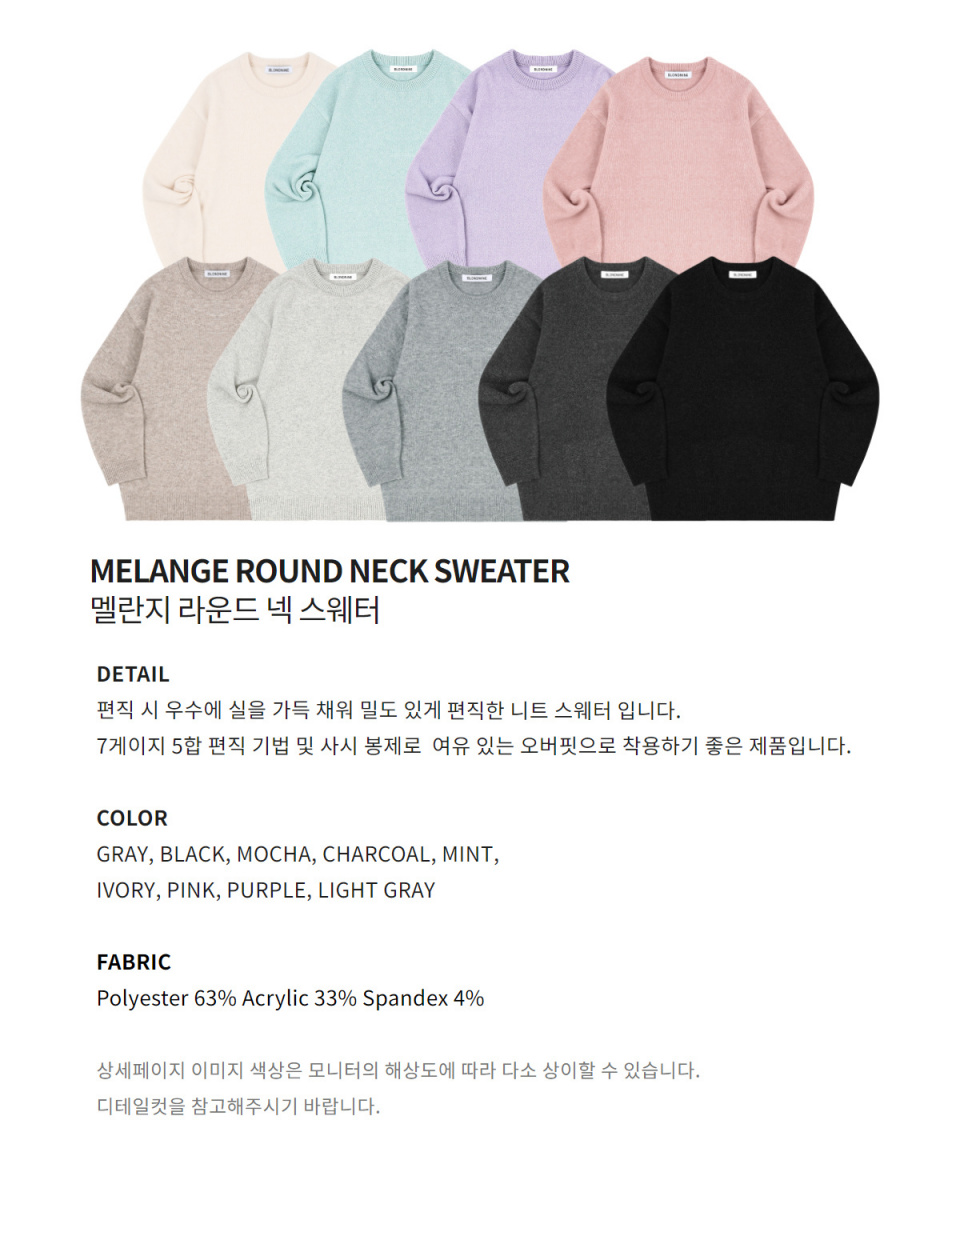 블론드나인(BLOND9) MELANGE ROUND NECK SWEATER_CHARCOAL